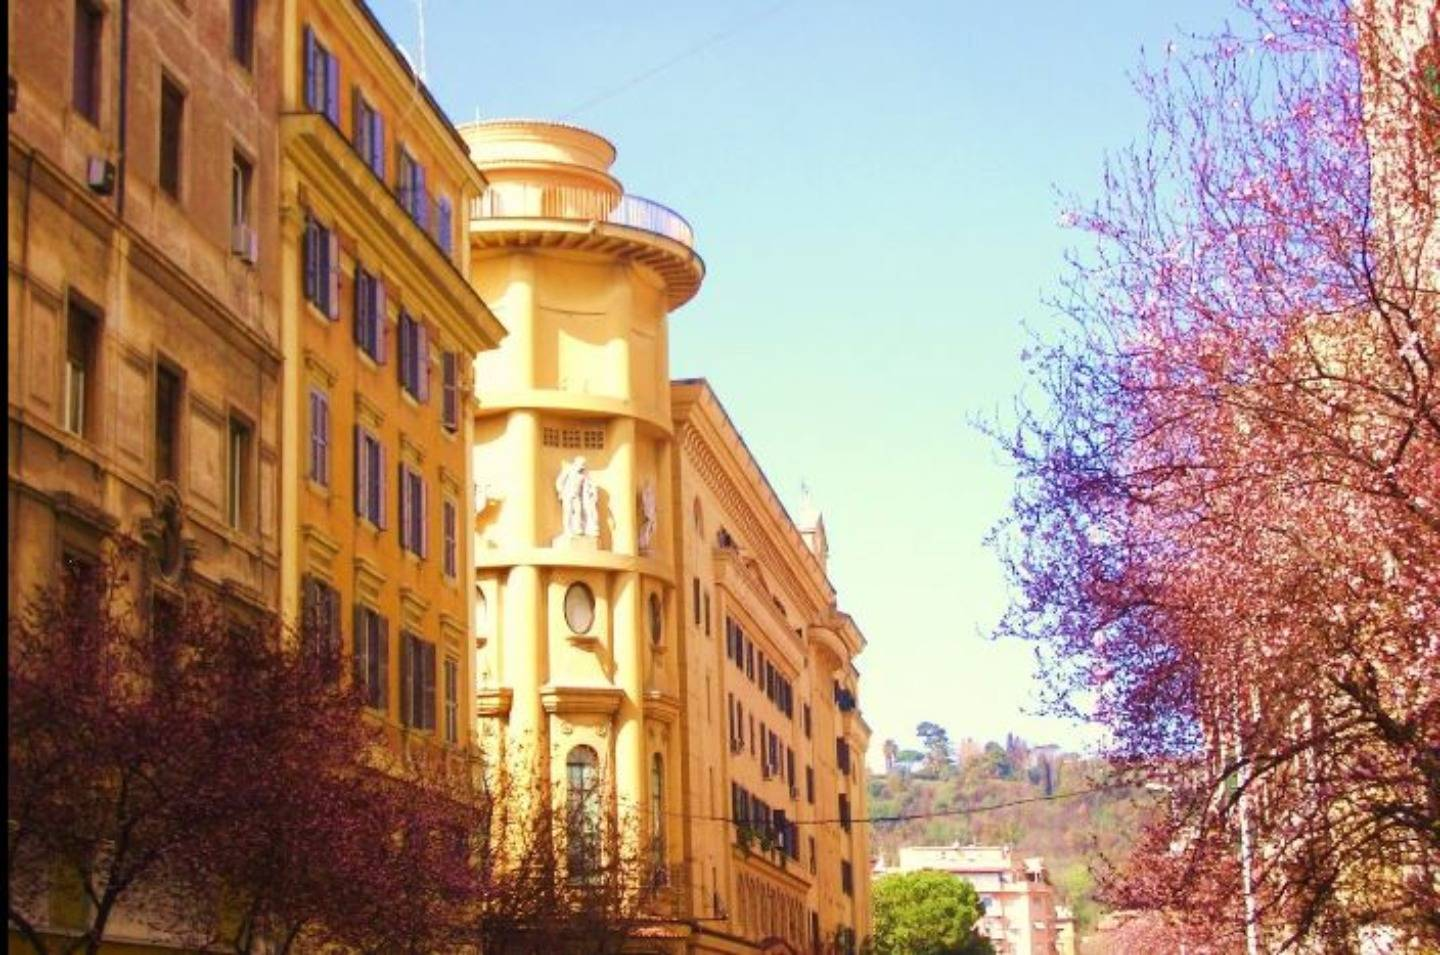 A tall building in a city at Campanella3.